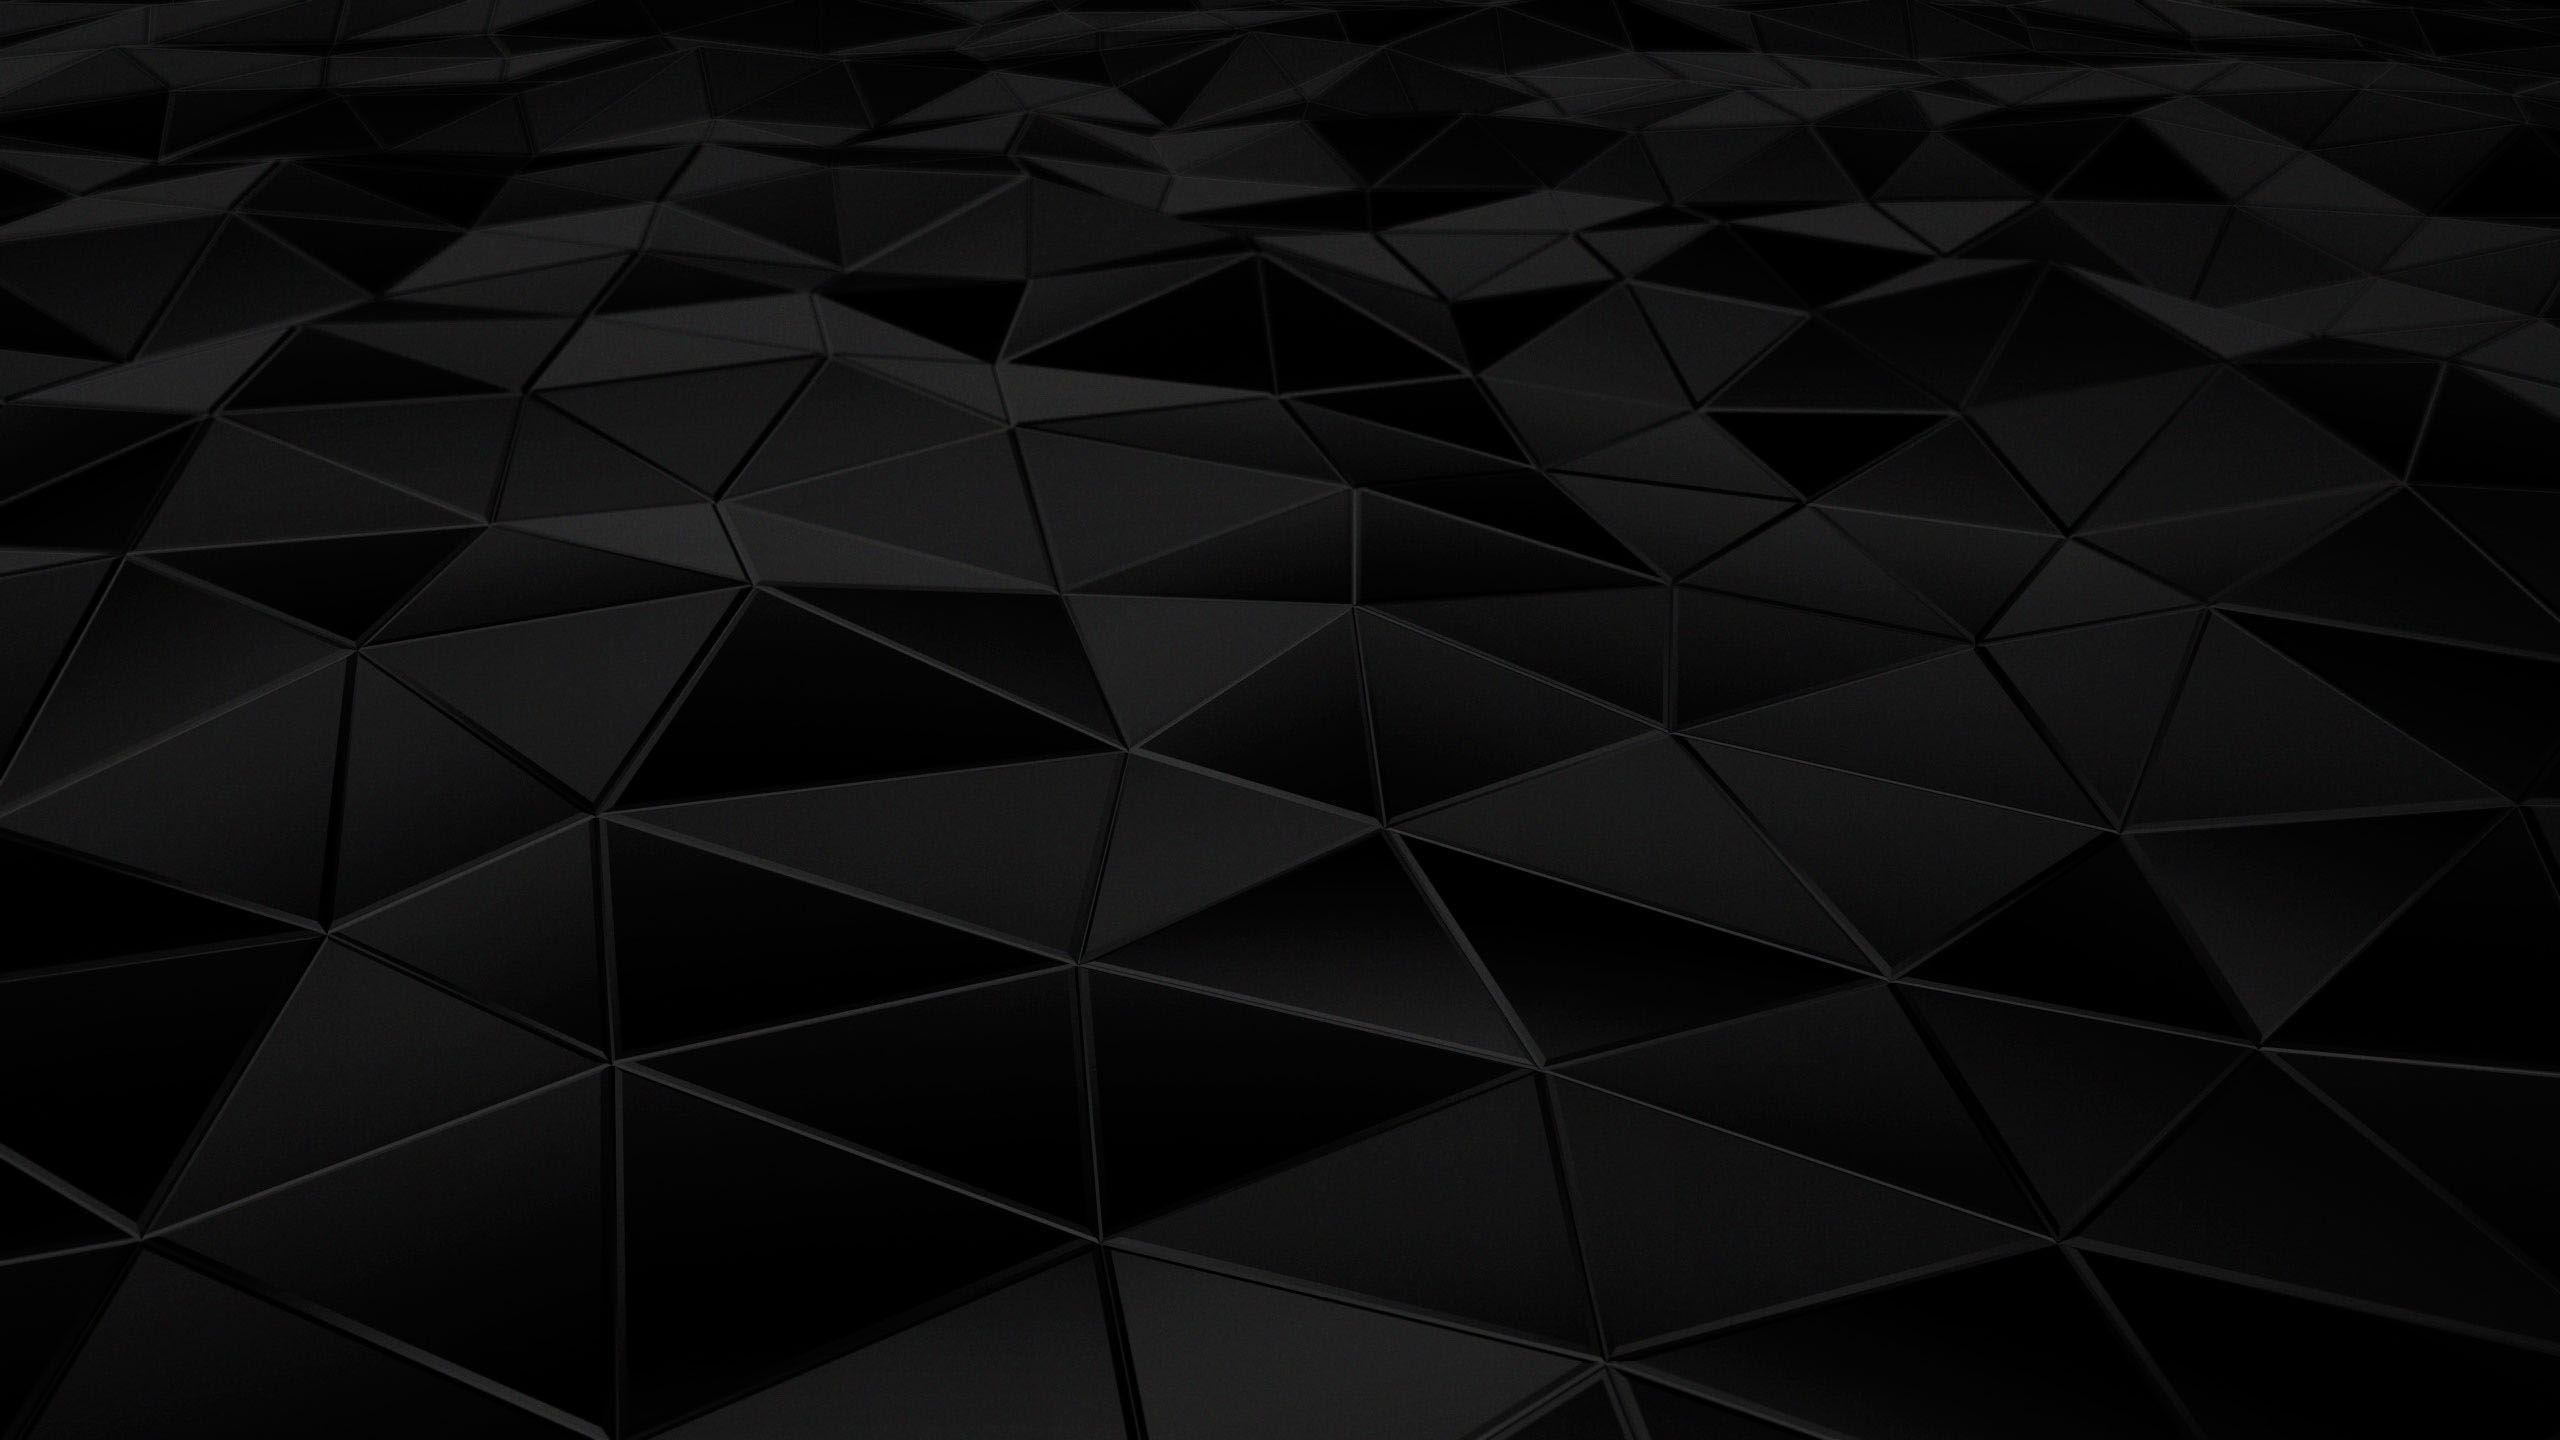 Black Abstract Wallpapers Images Photos Pictures Backgrounds 1920 1200 Black Abstract Wallpaper 65 Wallpa Black Abstract Wallpaper Black Abstract 13 Wallpaper